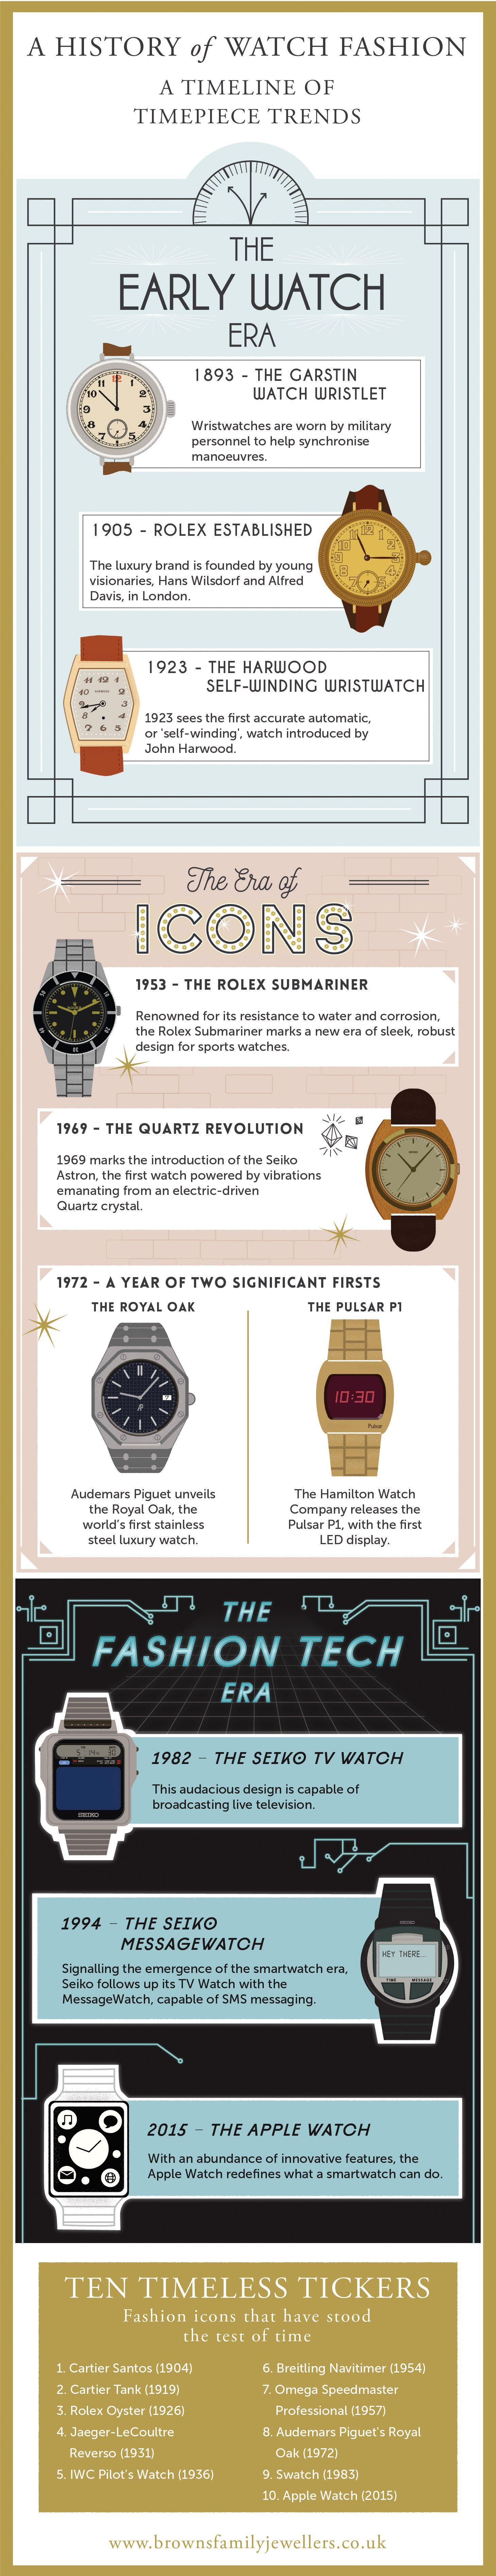 Infographic - A History of Watch Fashion. A timeline of timepiece trends through the ages. From 1893 to the Apple Watch in 2015.